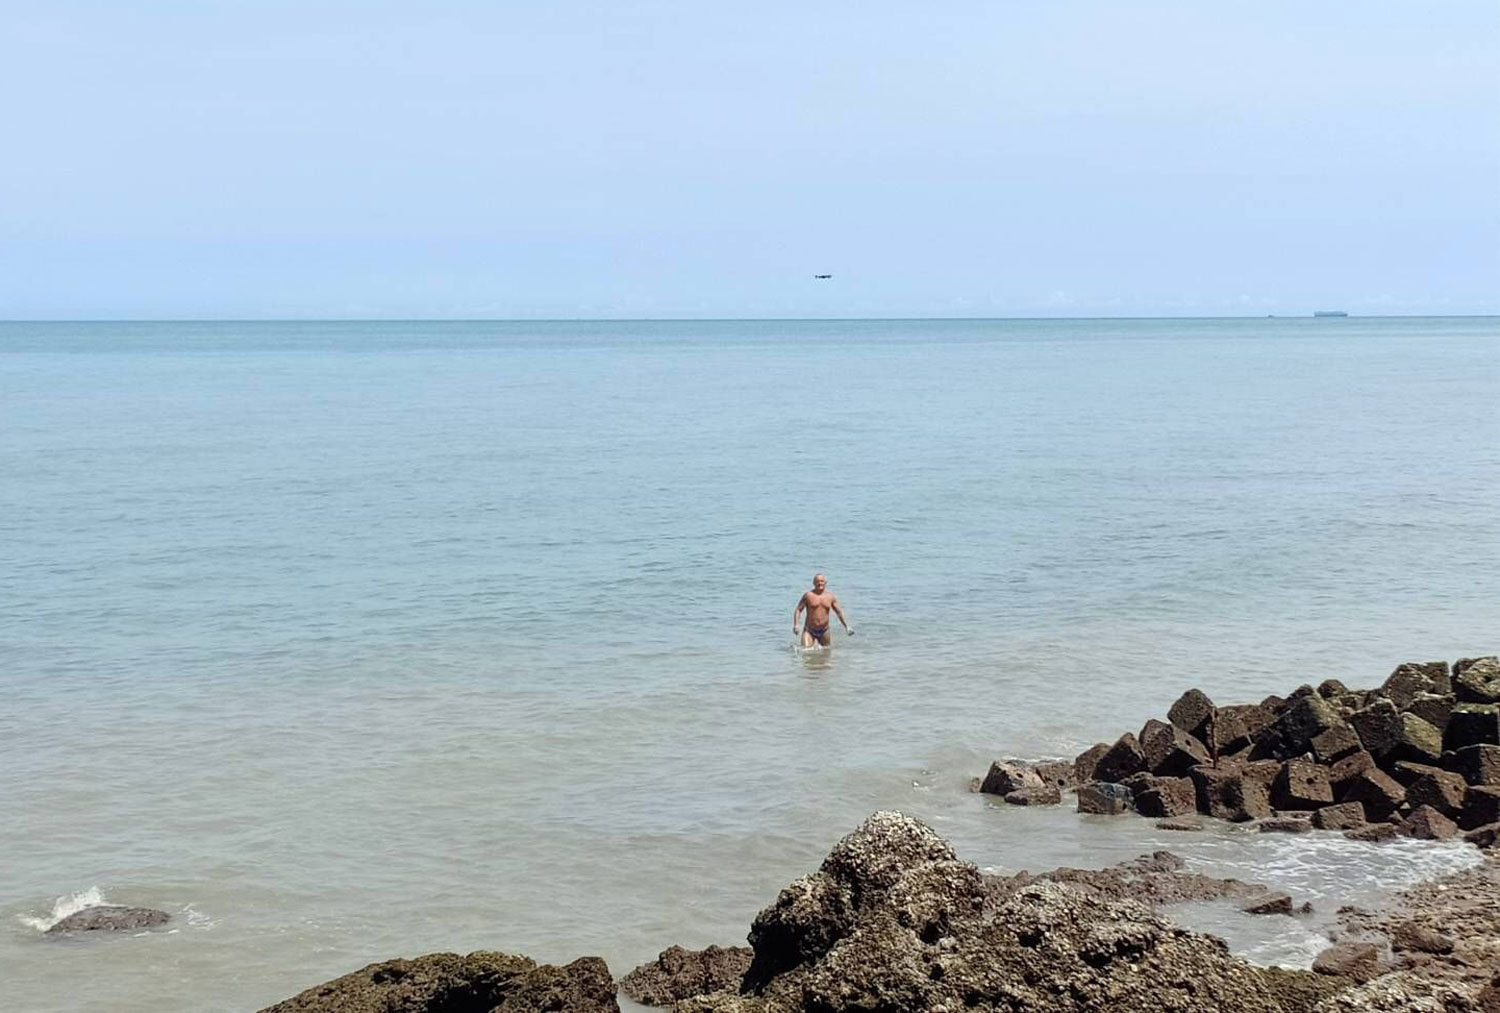 One of the three foreigners spotted swimming at a closed beach behind a hotel in Pattaya emerges from the water on Saturday. (Photo by Chaiyot Pupattanapong)